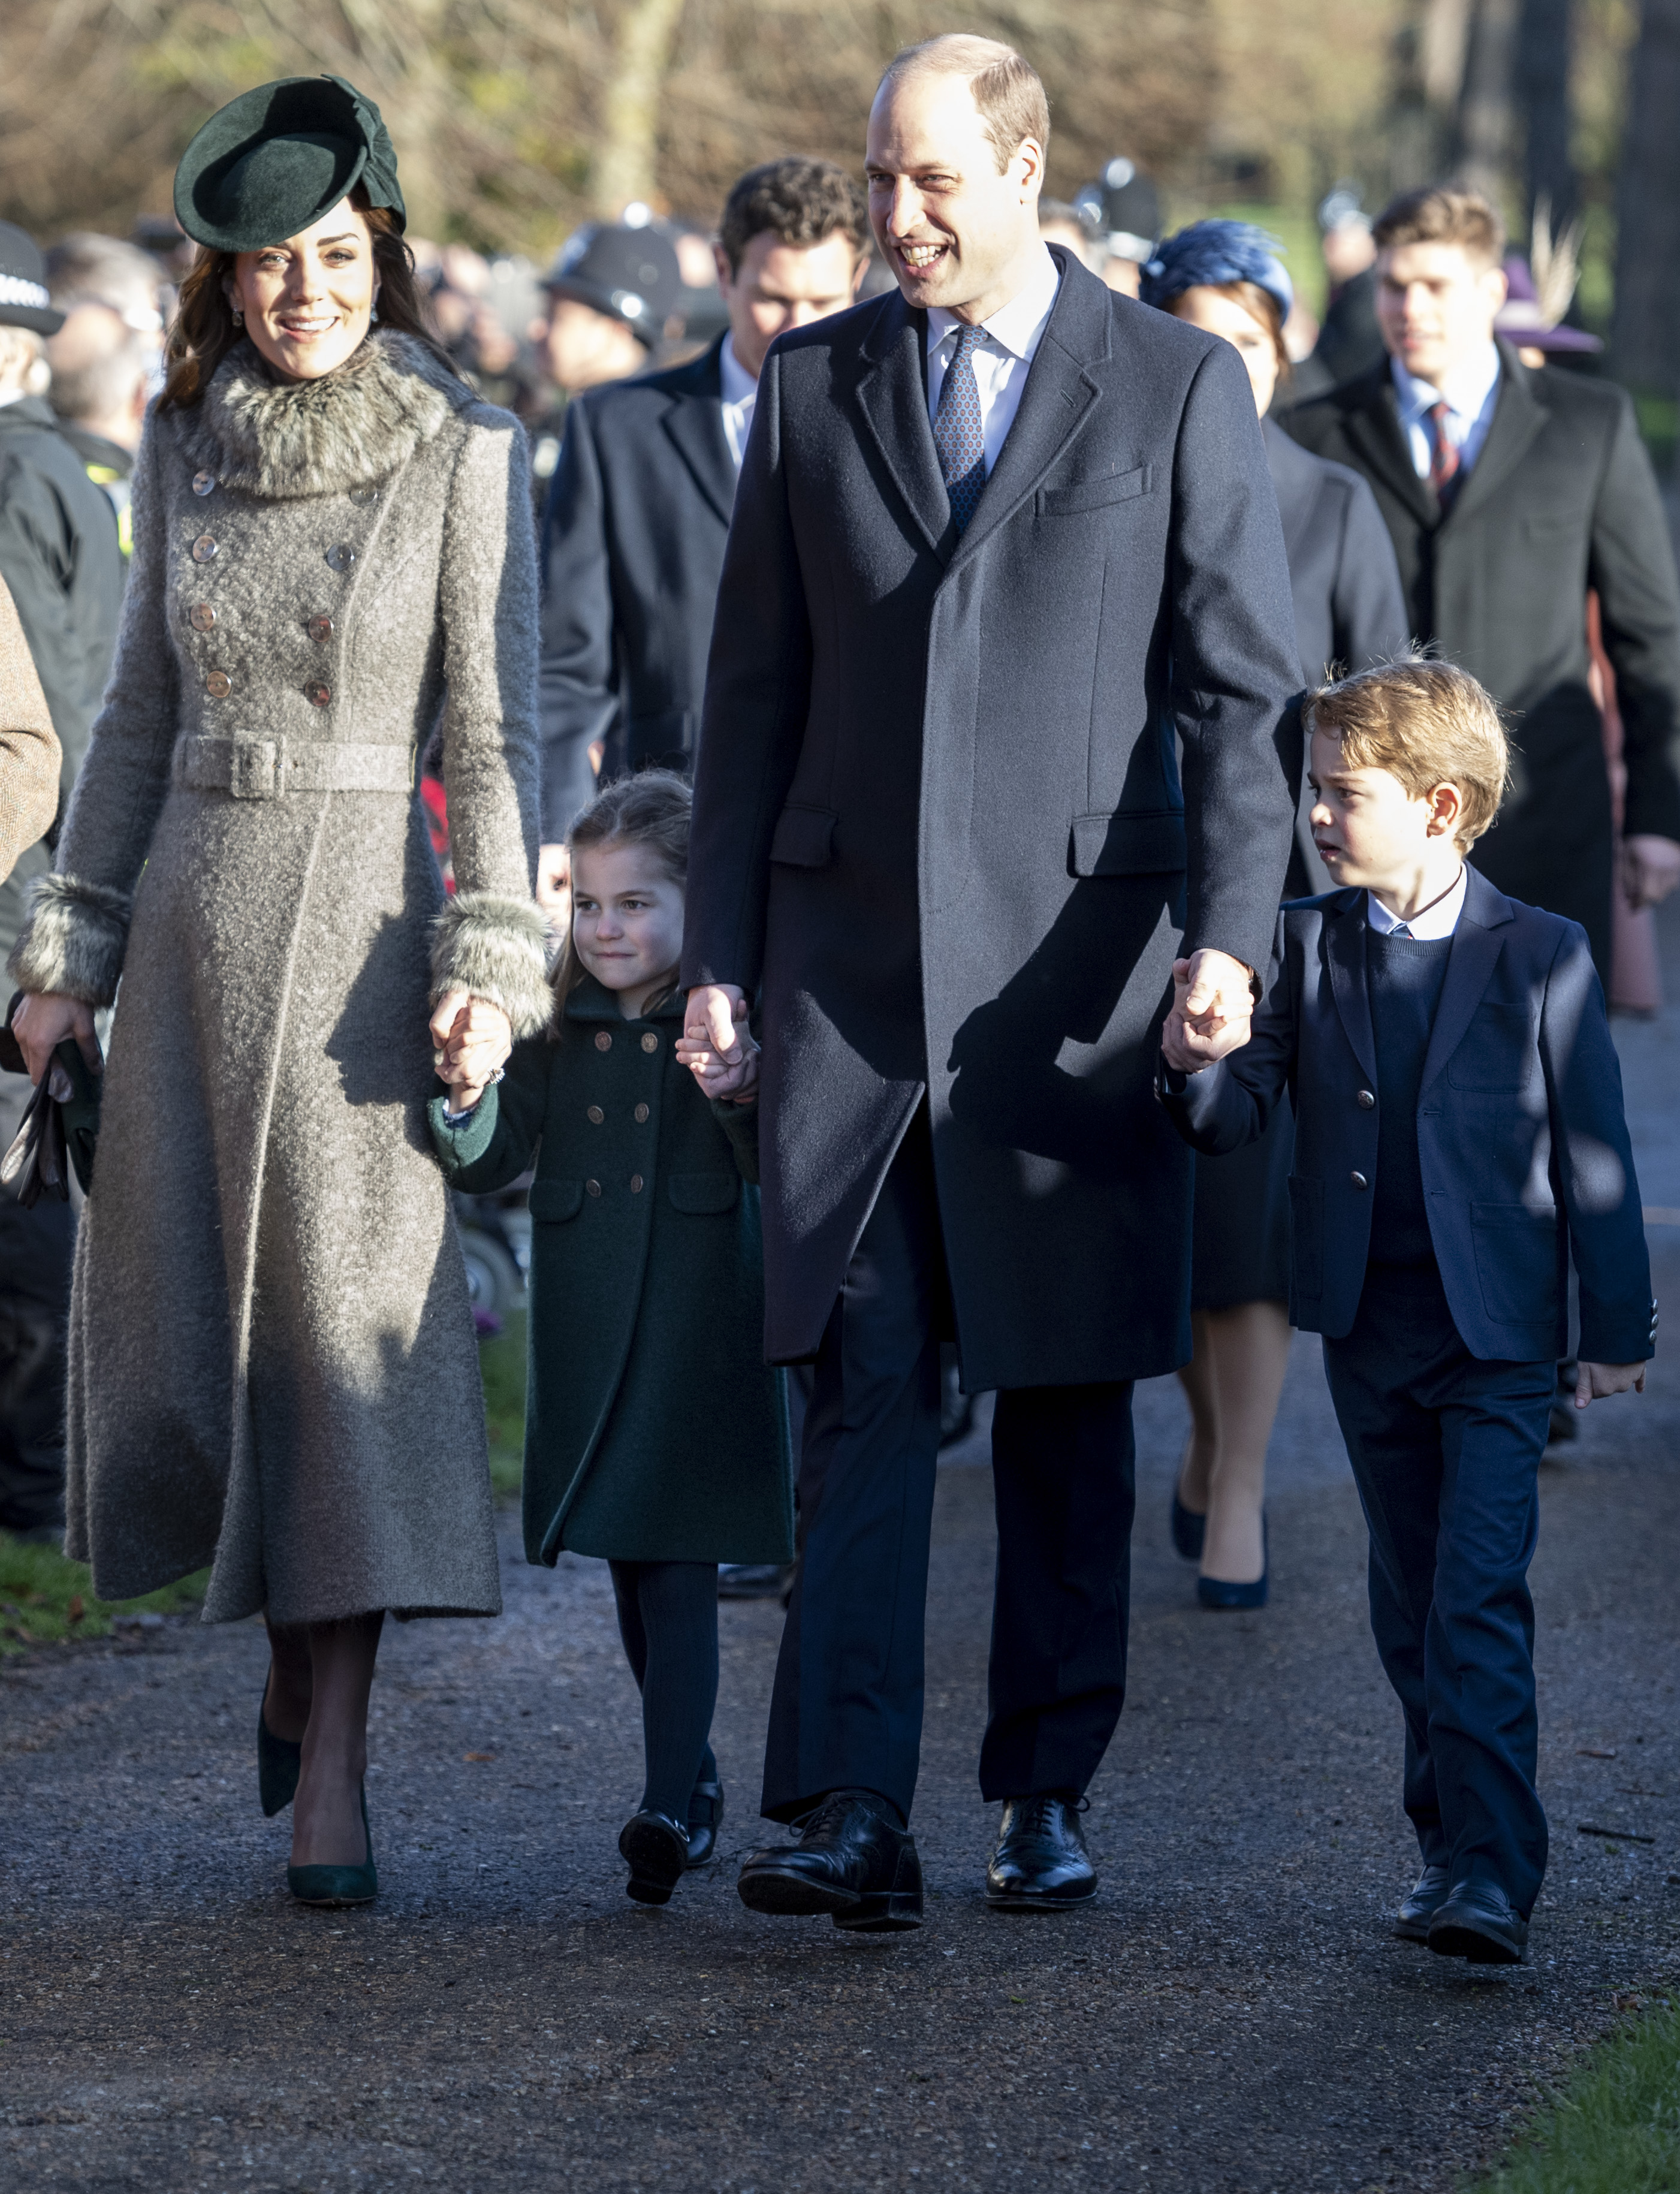 KING'S LYNN, ENGLAND - DECEMBER 25: Prince William, Duke of Cambridge and Catherine, Duchess of Cambridge with Prince George of Cambridge and Princess Charlotte of Cambridge attend the Christmas Day Church service at Church of St Mary Magdalene on the Sandringham estate on December 25, 2019 in King's Lynn, United Kingdom. (Photo by UK Press Pool/UK Press via Getty Images)